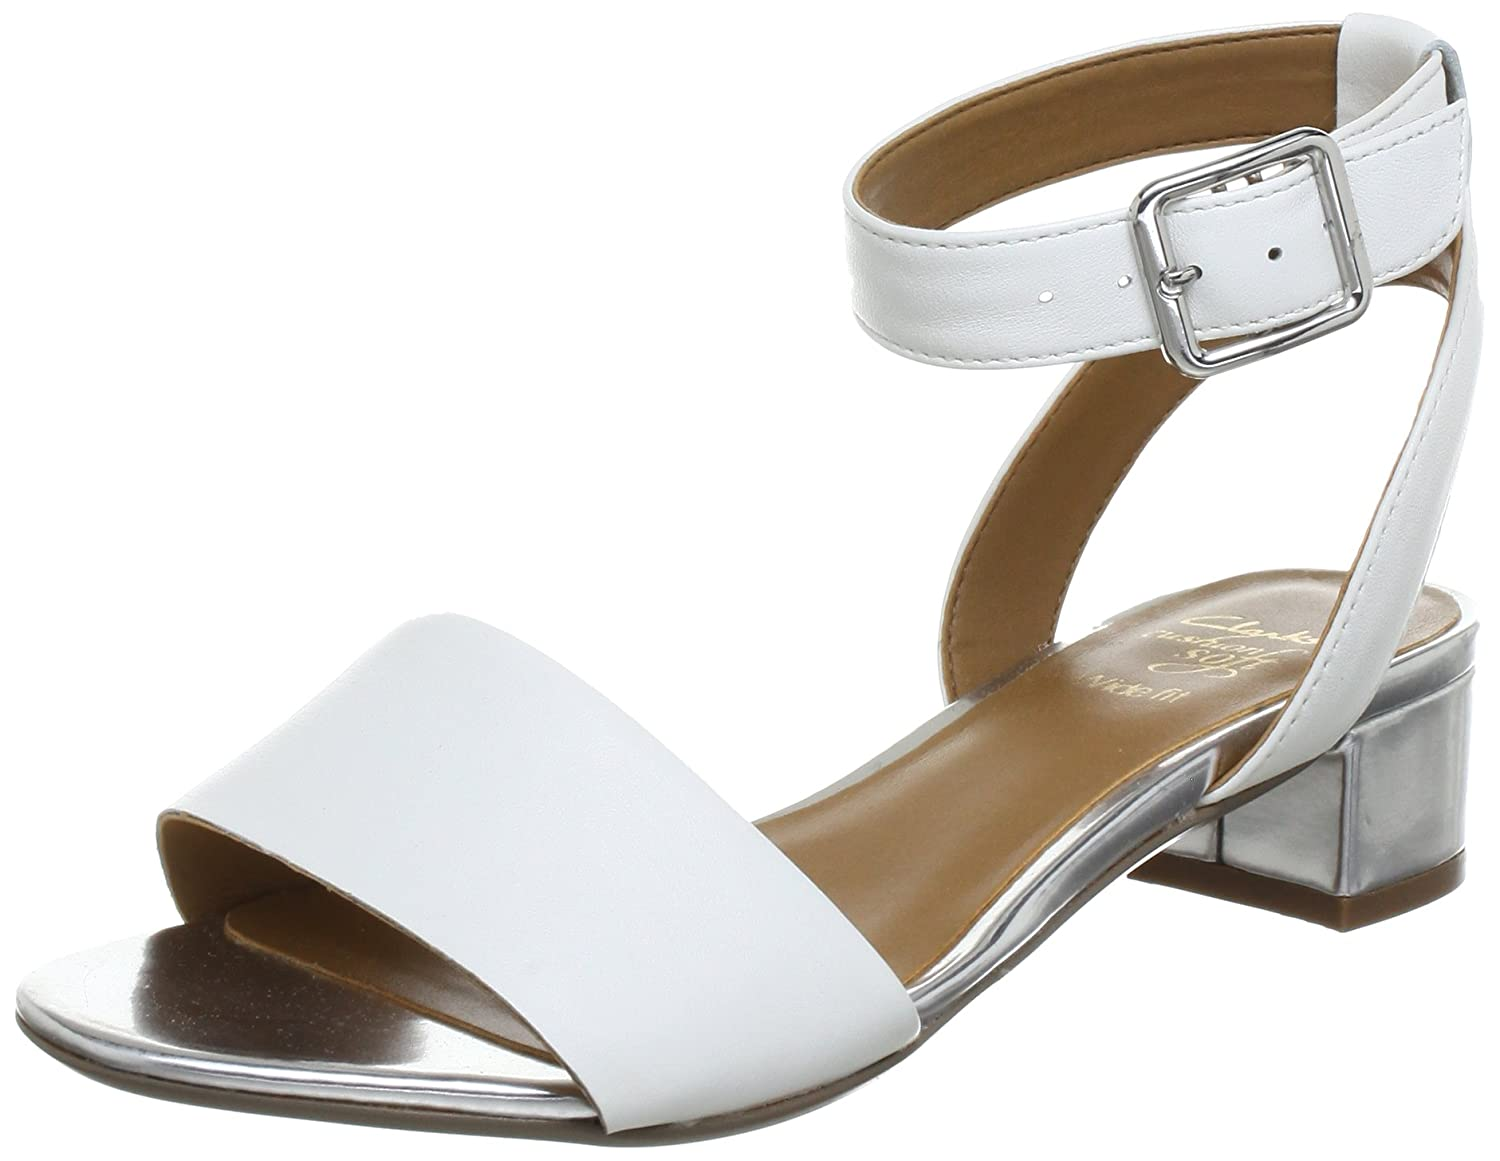 04d29281b08a9d Clarks Womens Sharna Balcony White Combi Leather 6 UK  Amazon.co.uk  Shoes    Bags